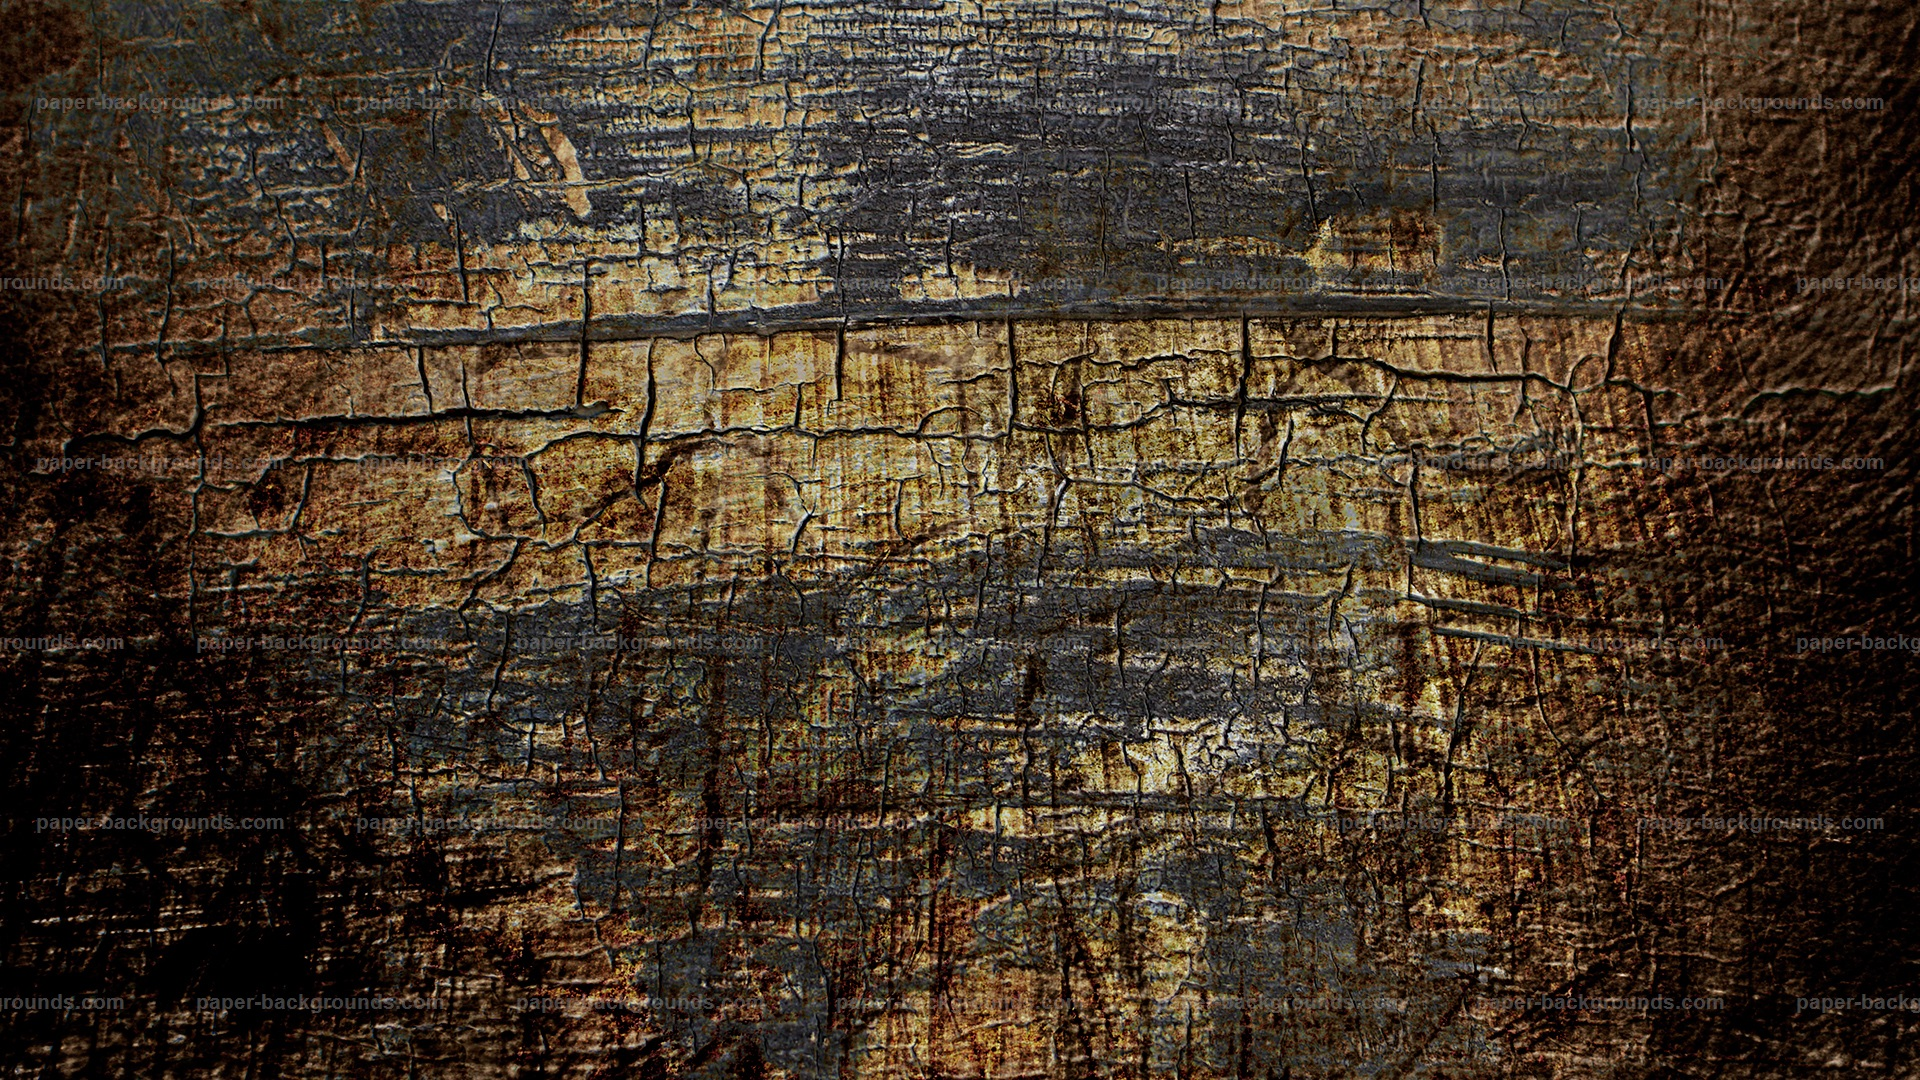 Grunge Rusty Background Texture HD Paper Backgrounds 1920x1080